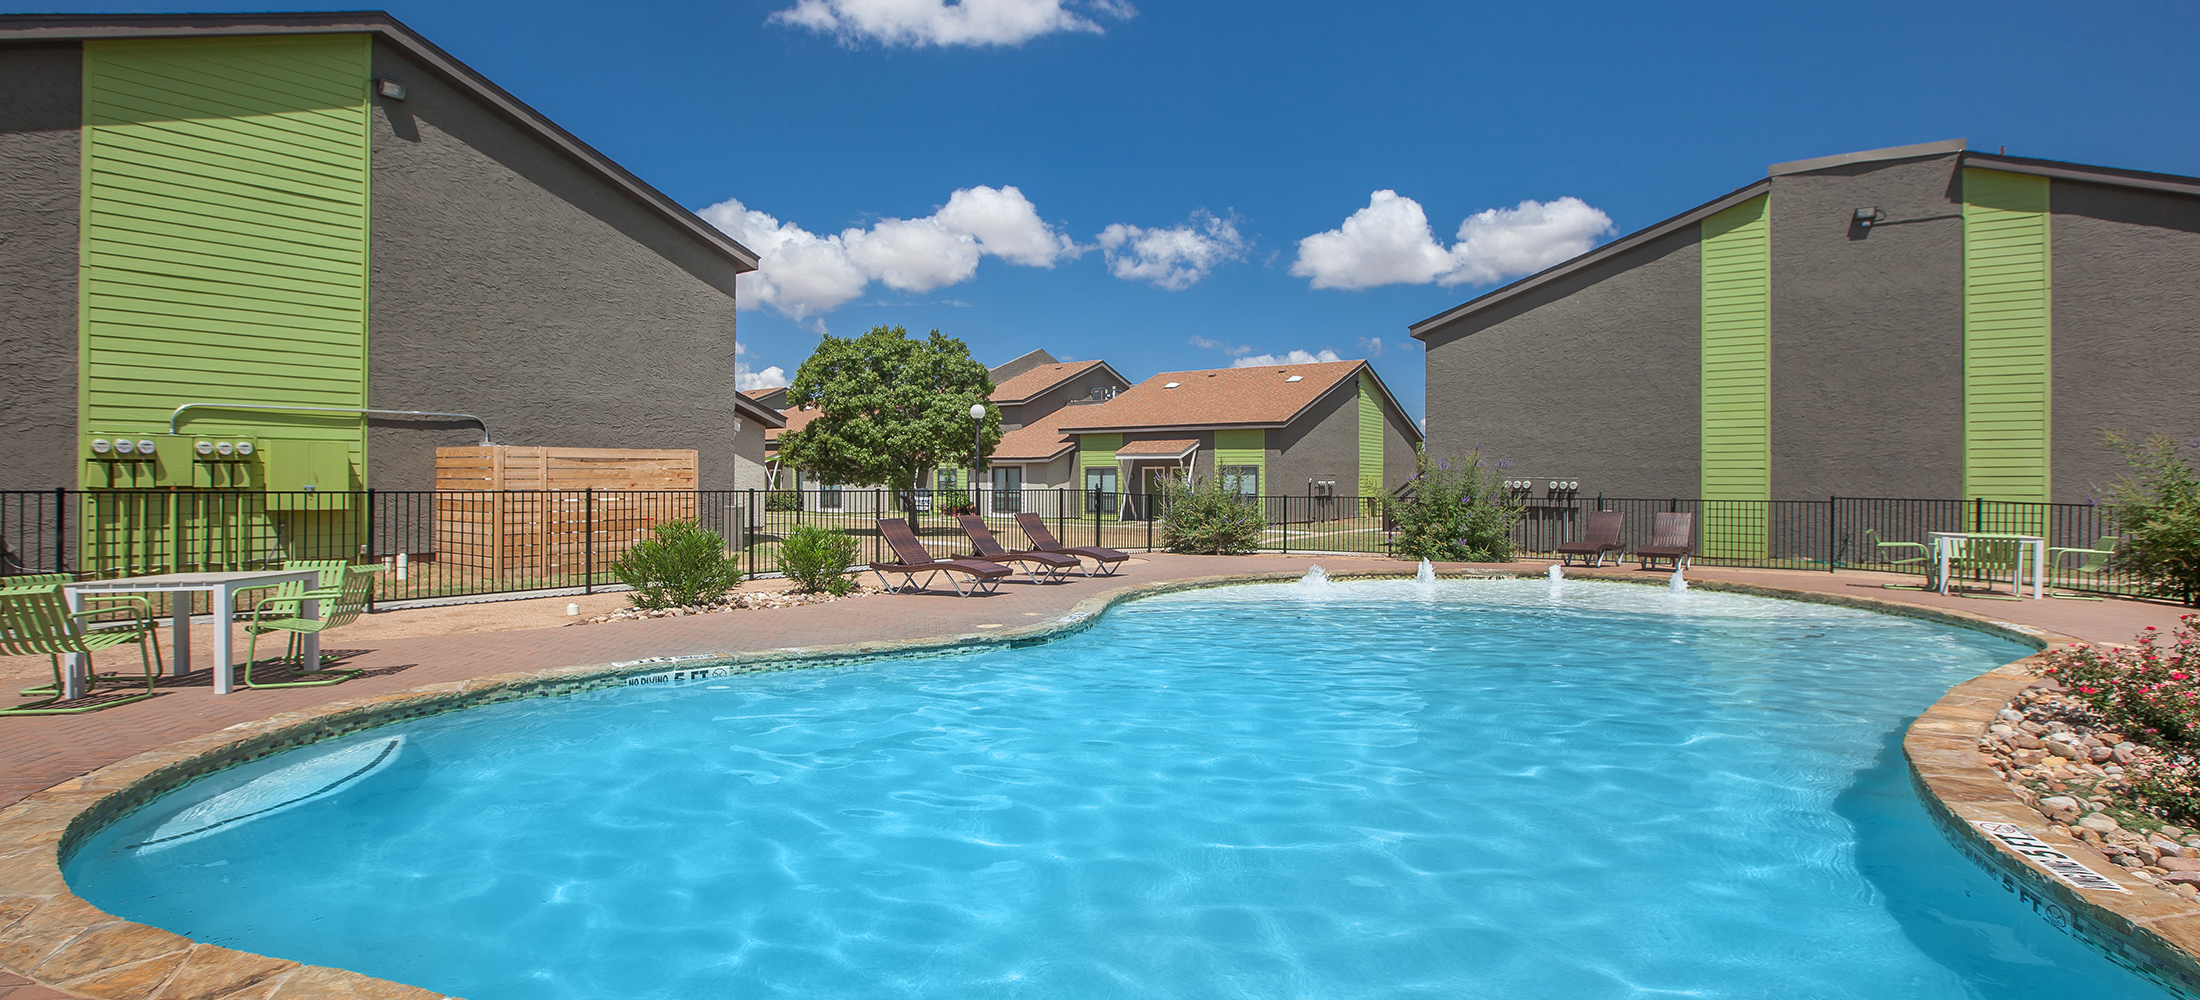 Convenient Midland, TX Location. Welcome To Garden Apartments